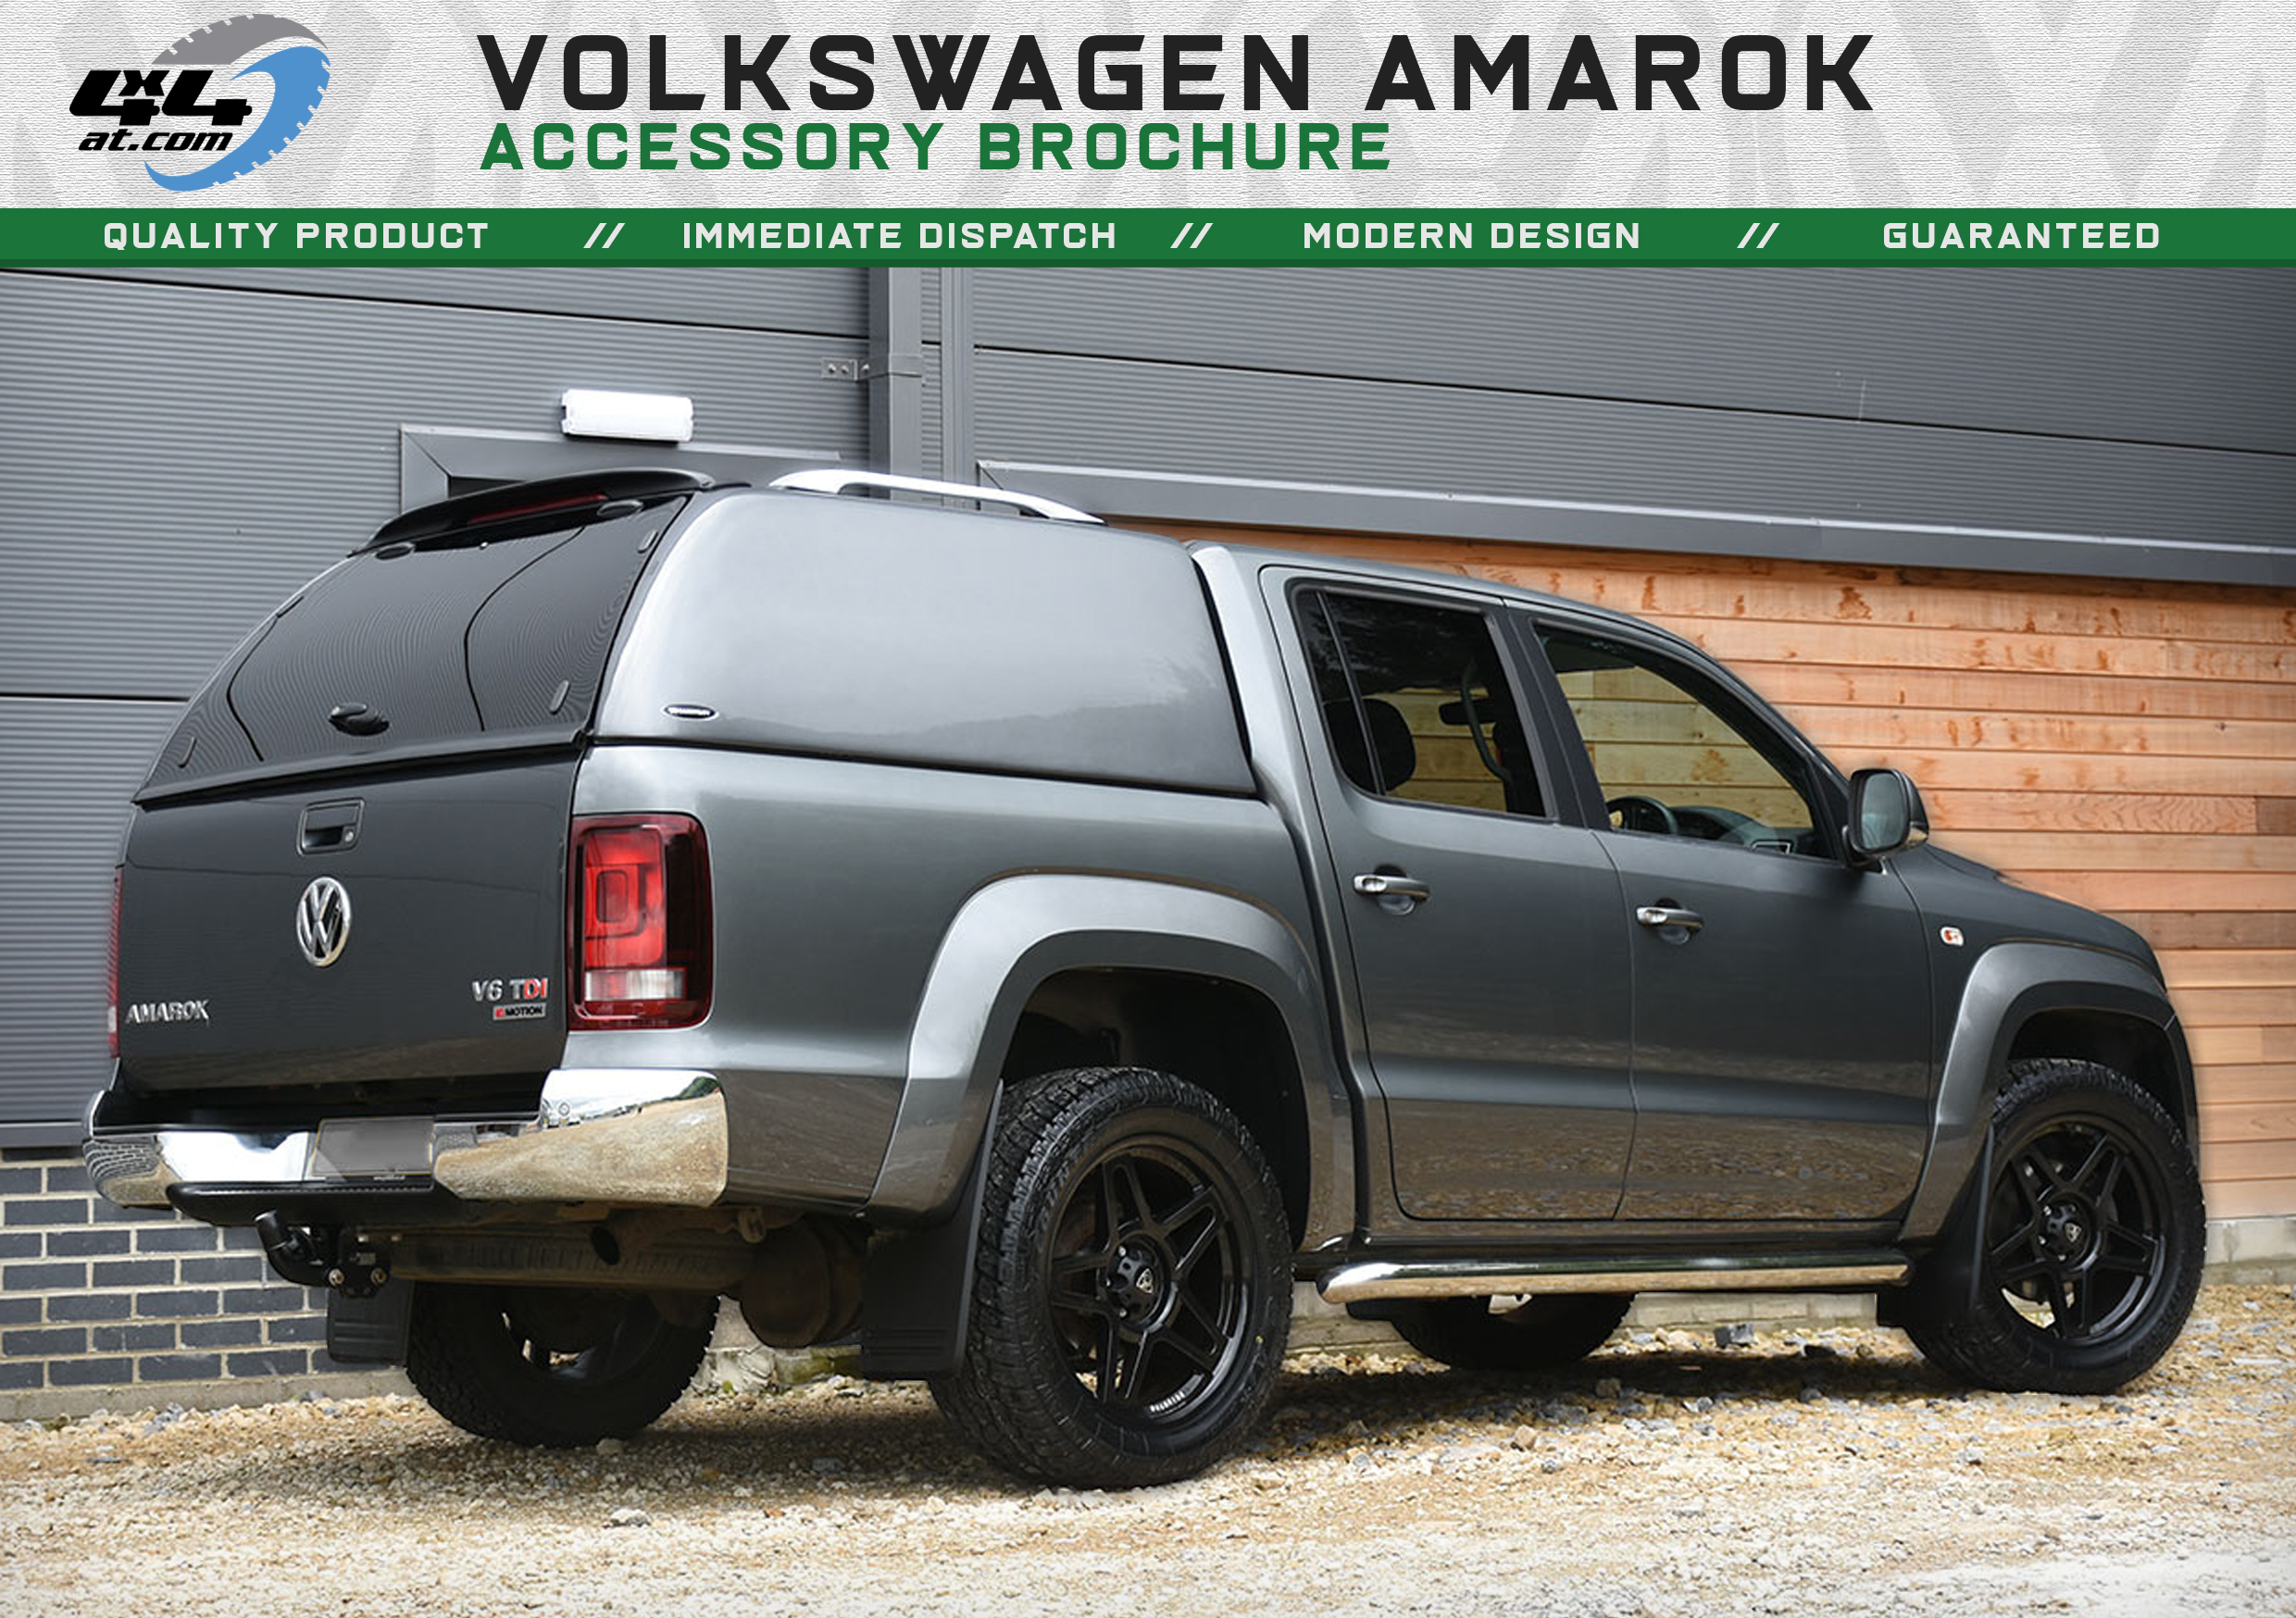 VW Amarok Accessories - Brochure Download